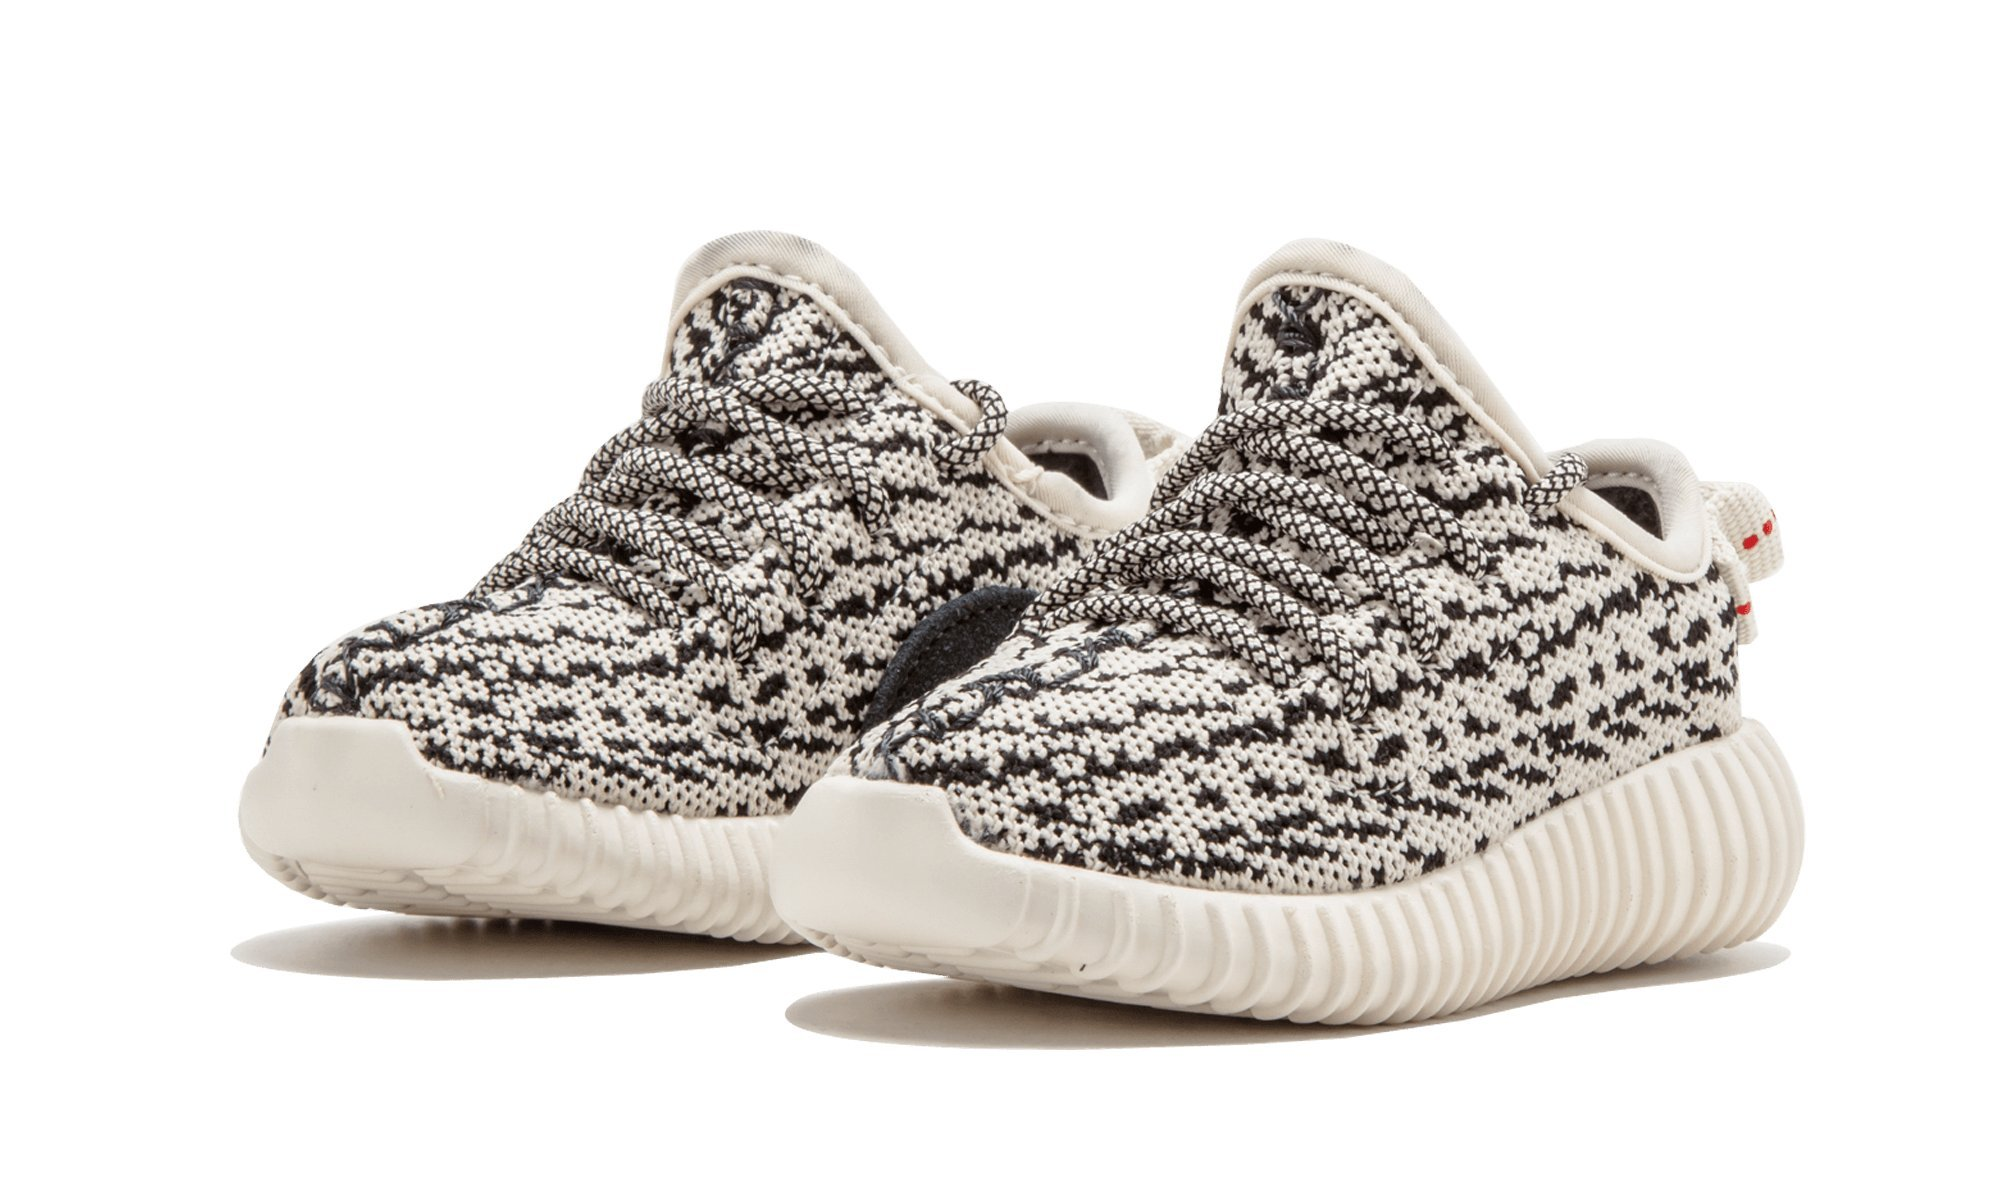 Adidas Yeezy Boost 350 Infant - US 9K by adidas (Image #3)